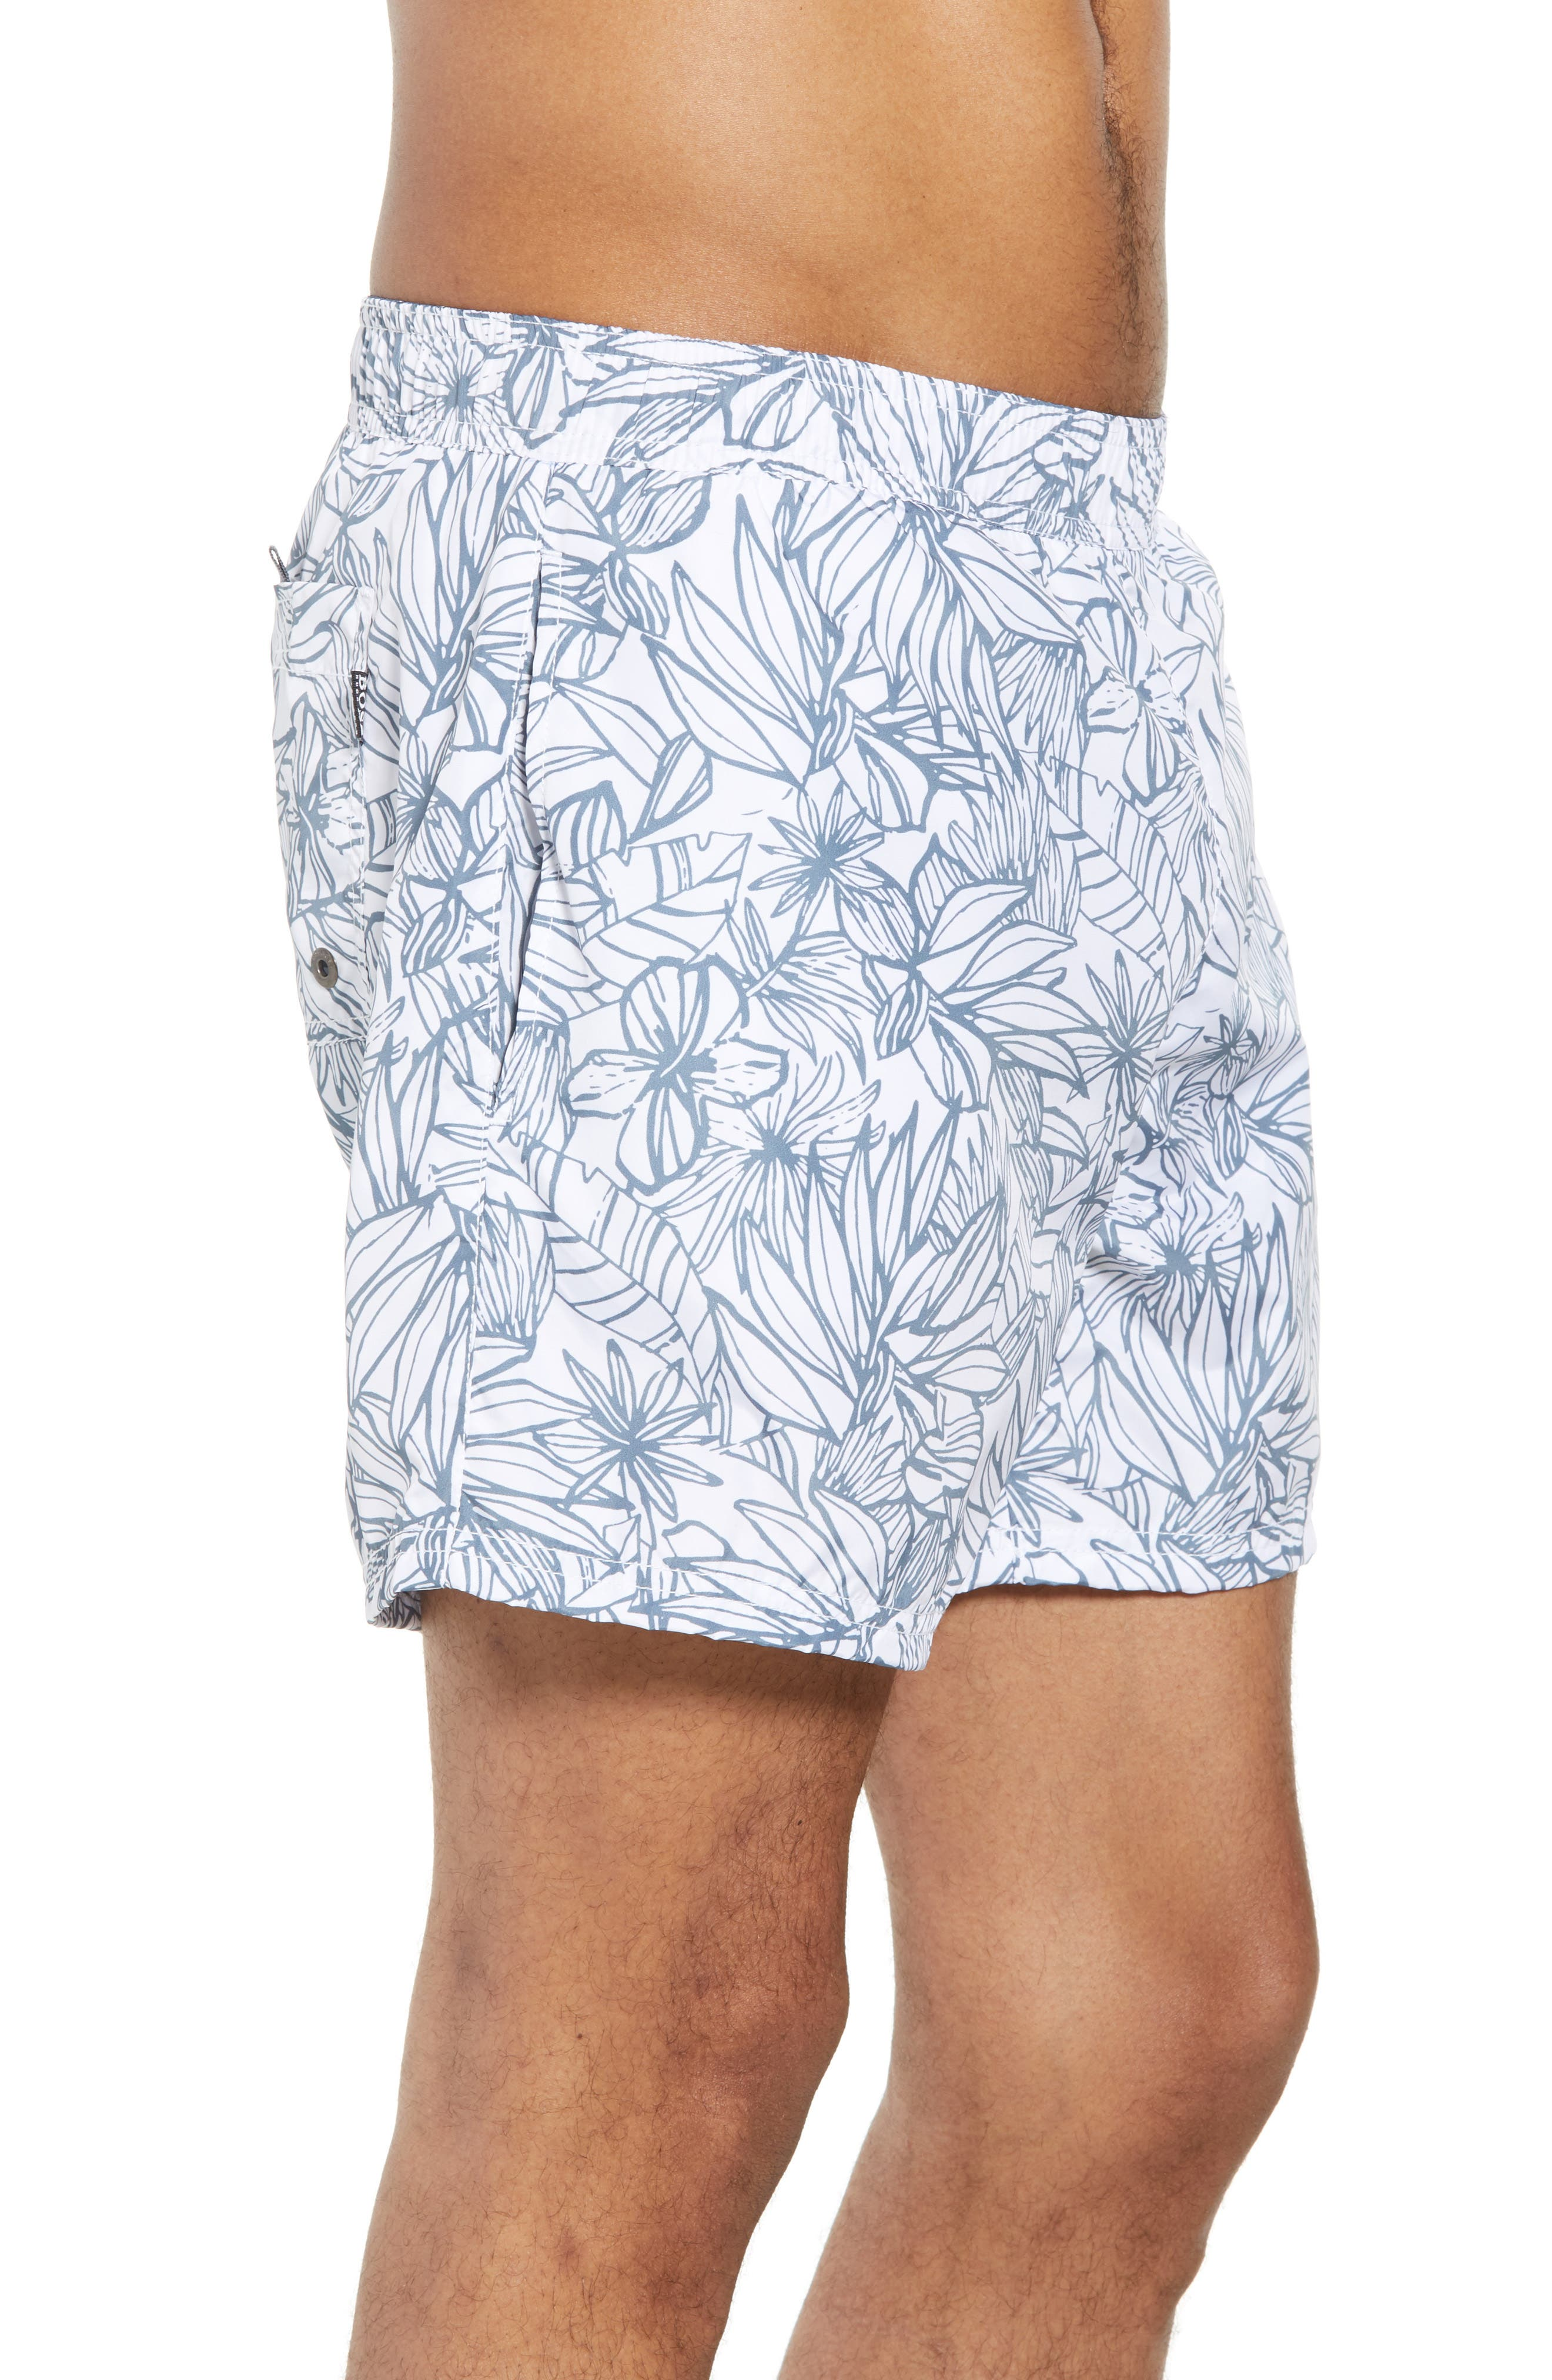 Needlefish Palm Swim Trunks,                             Alternate thumbnail 3, color,                             WHITE